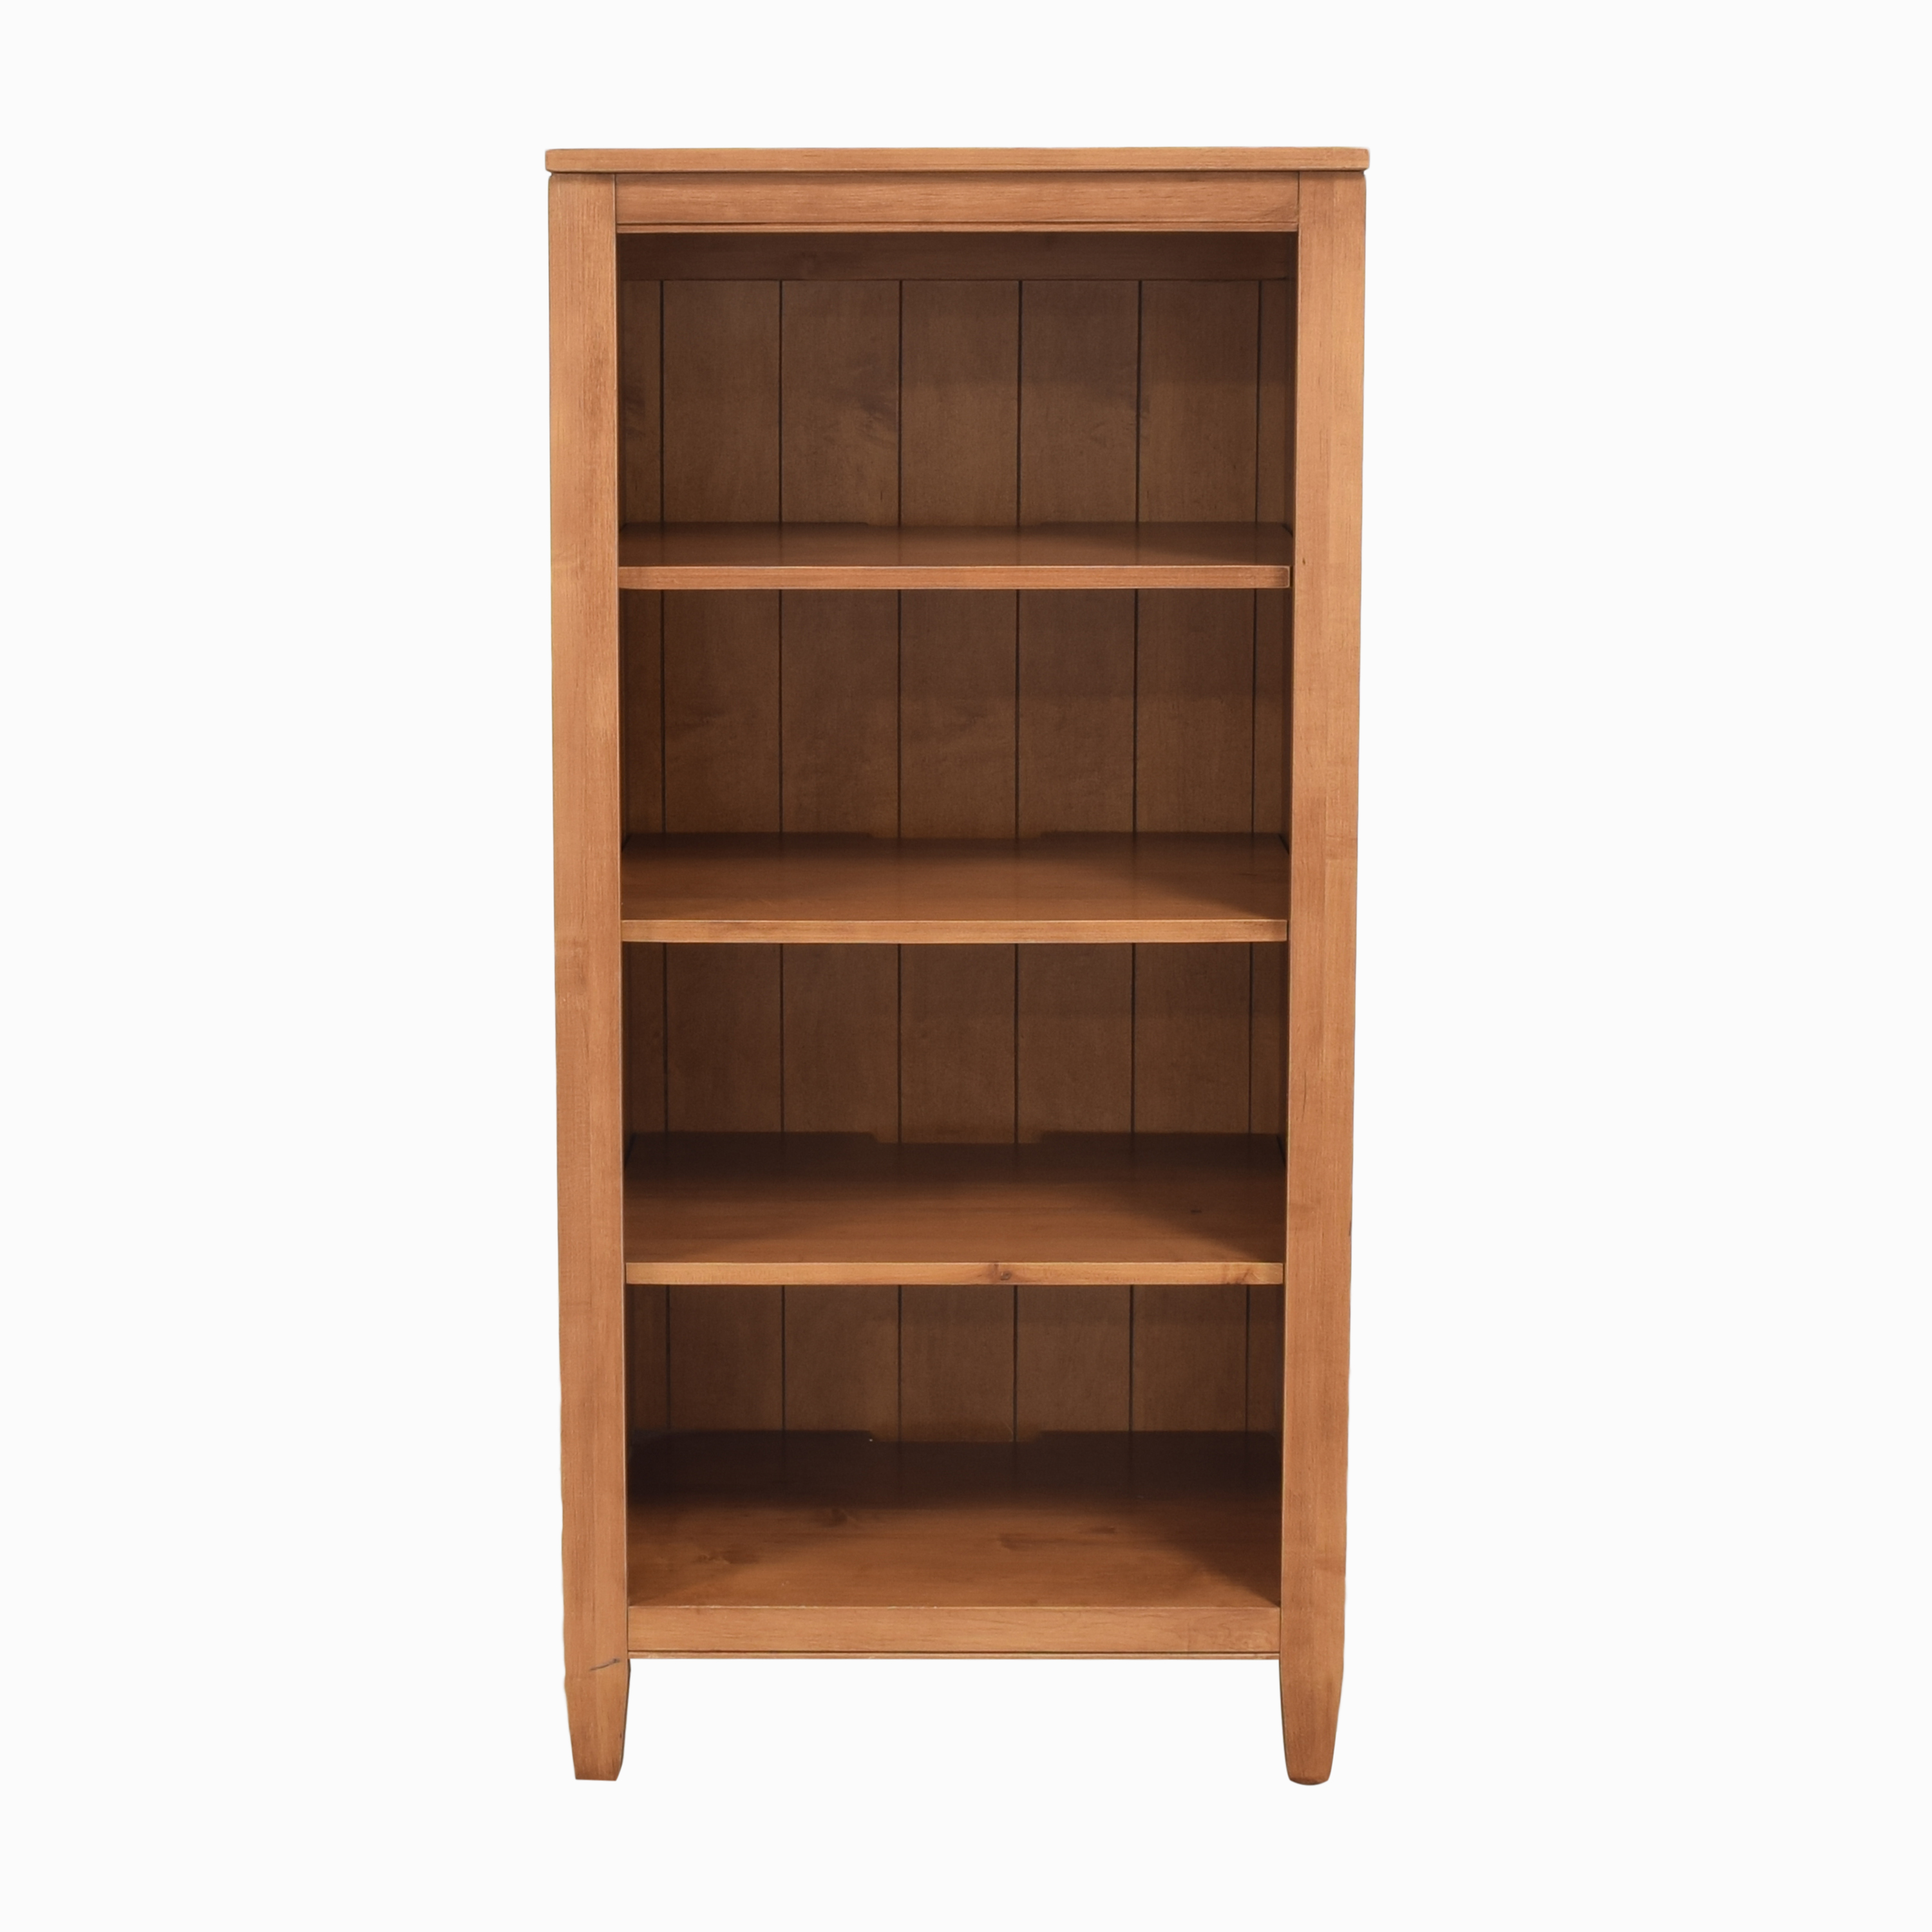 Ethan Allen Country Colors Bookcase / Bookcases & Shelving